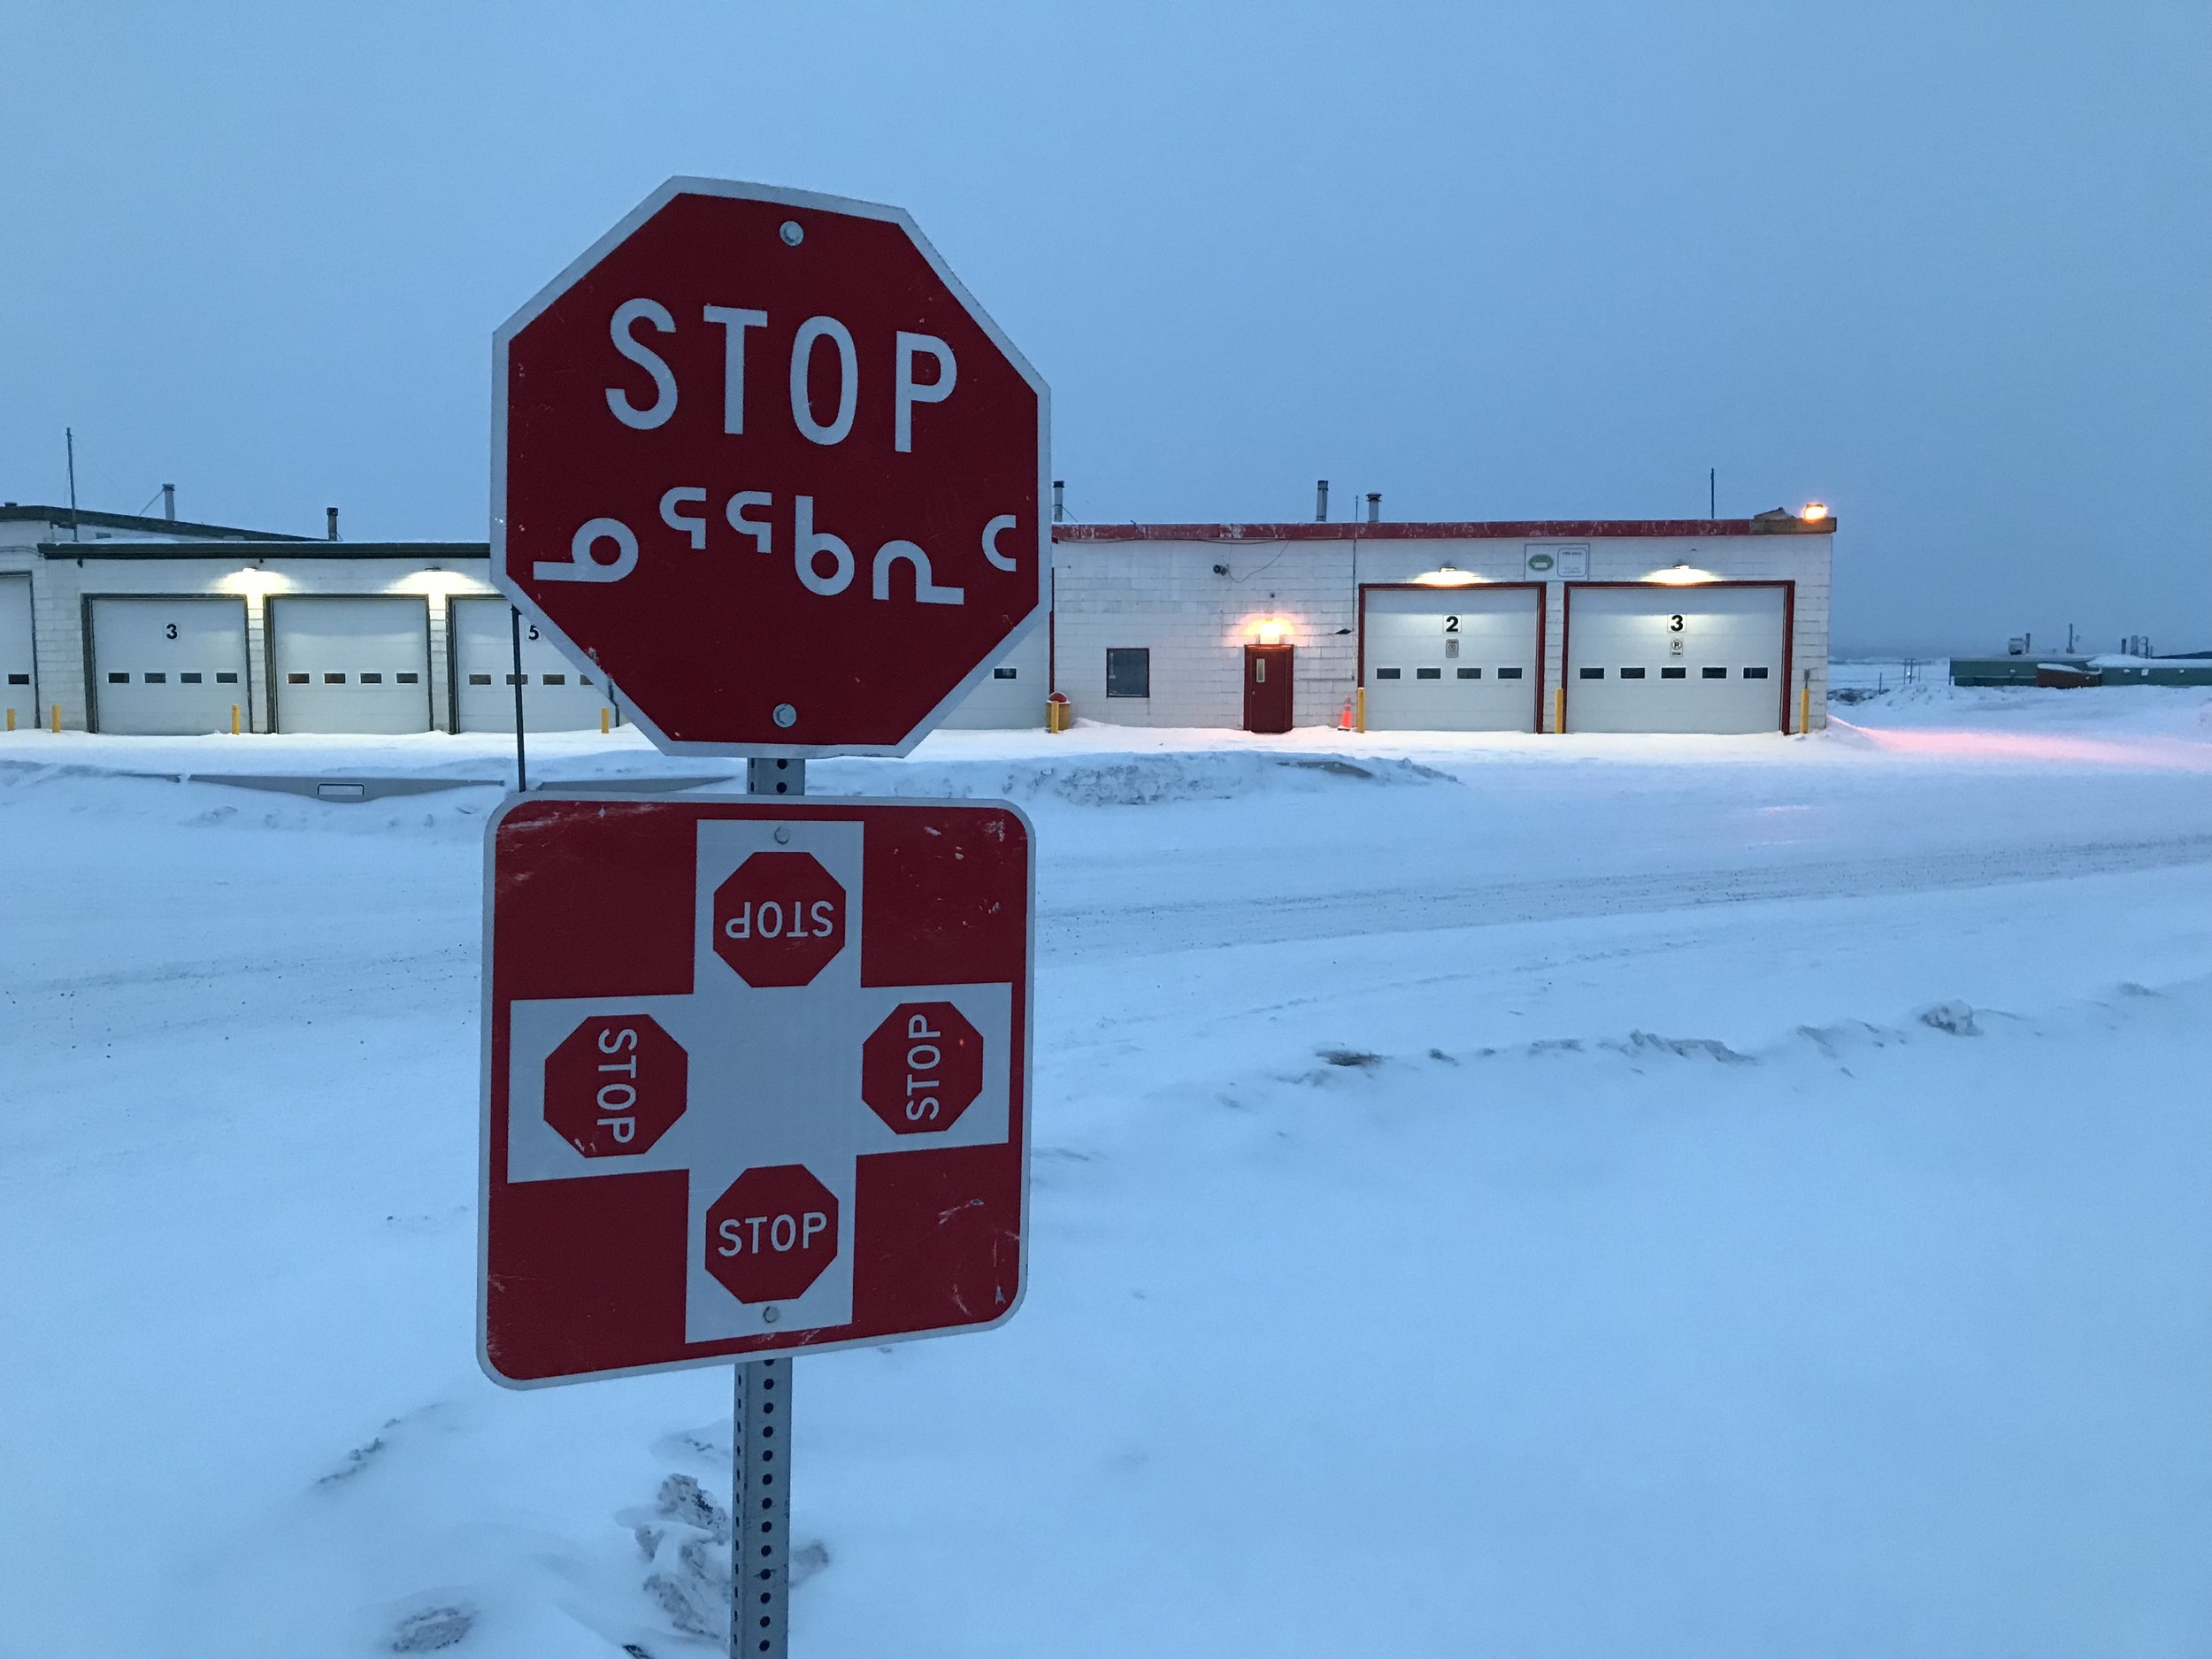 Inuktitut on the stop sign!